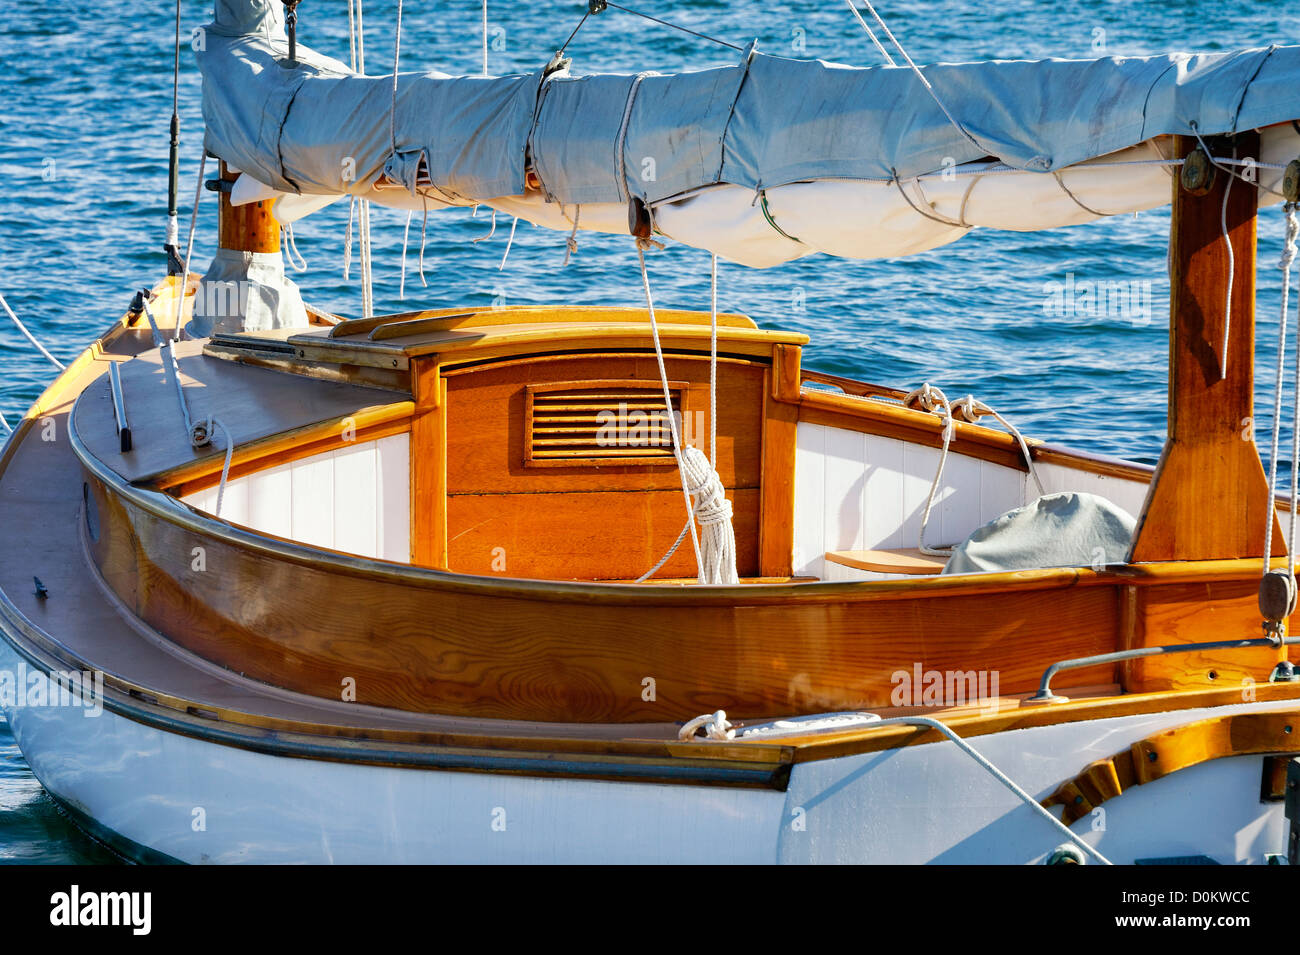 Wood sailboat detail. - Stock Image